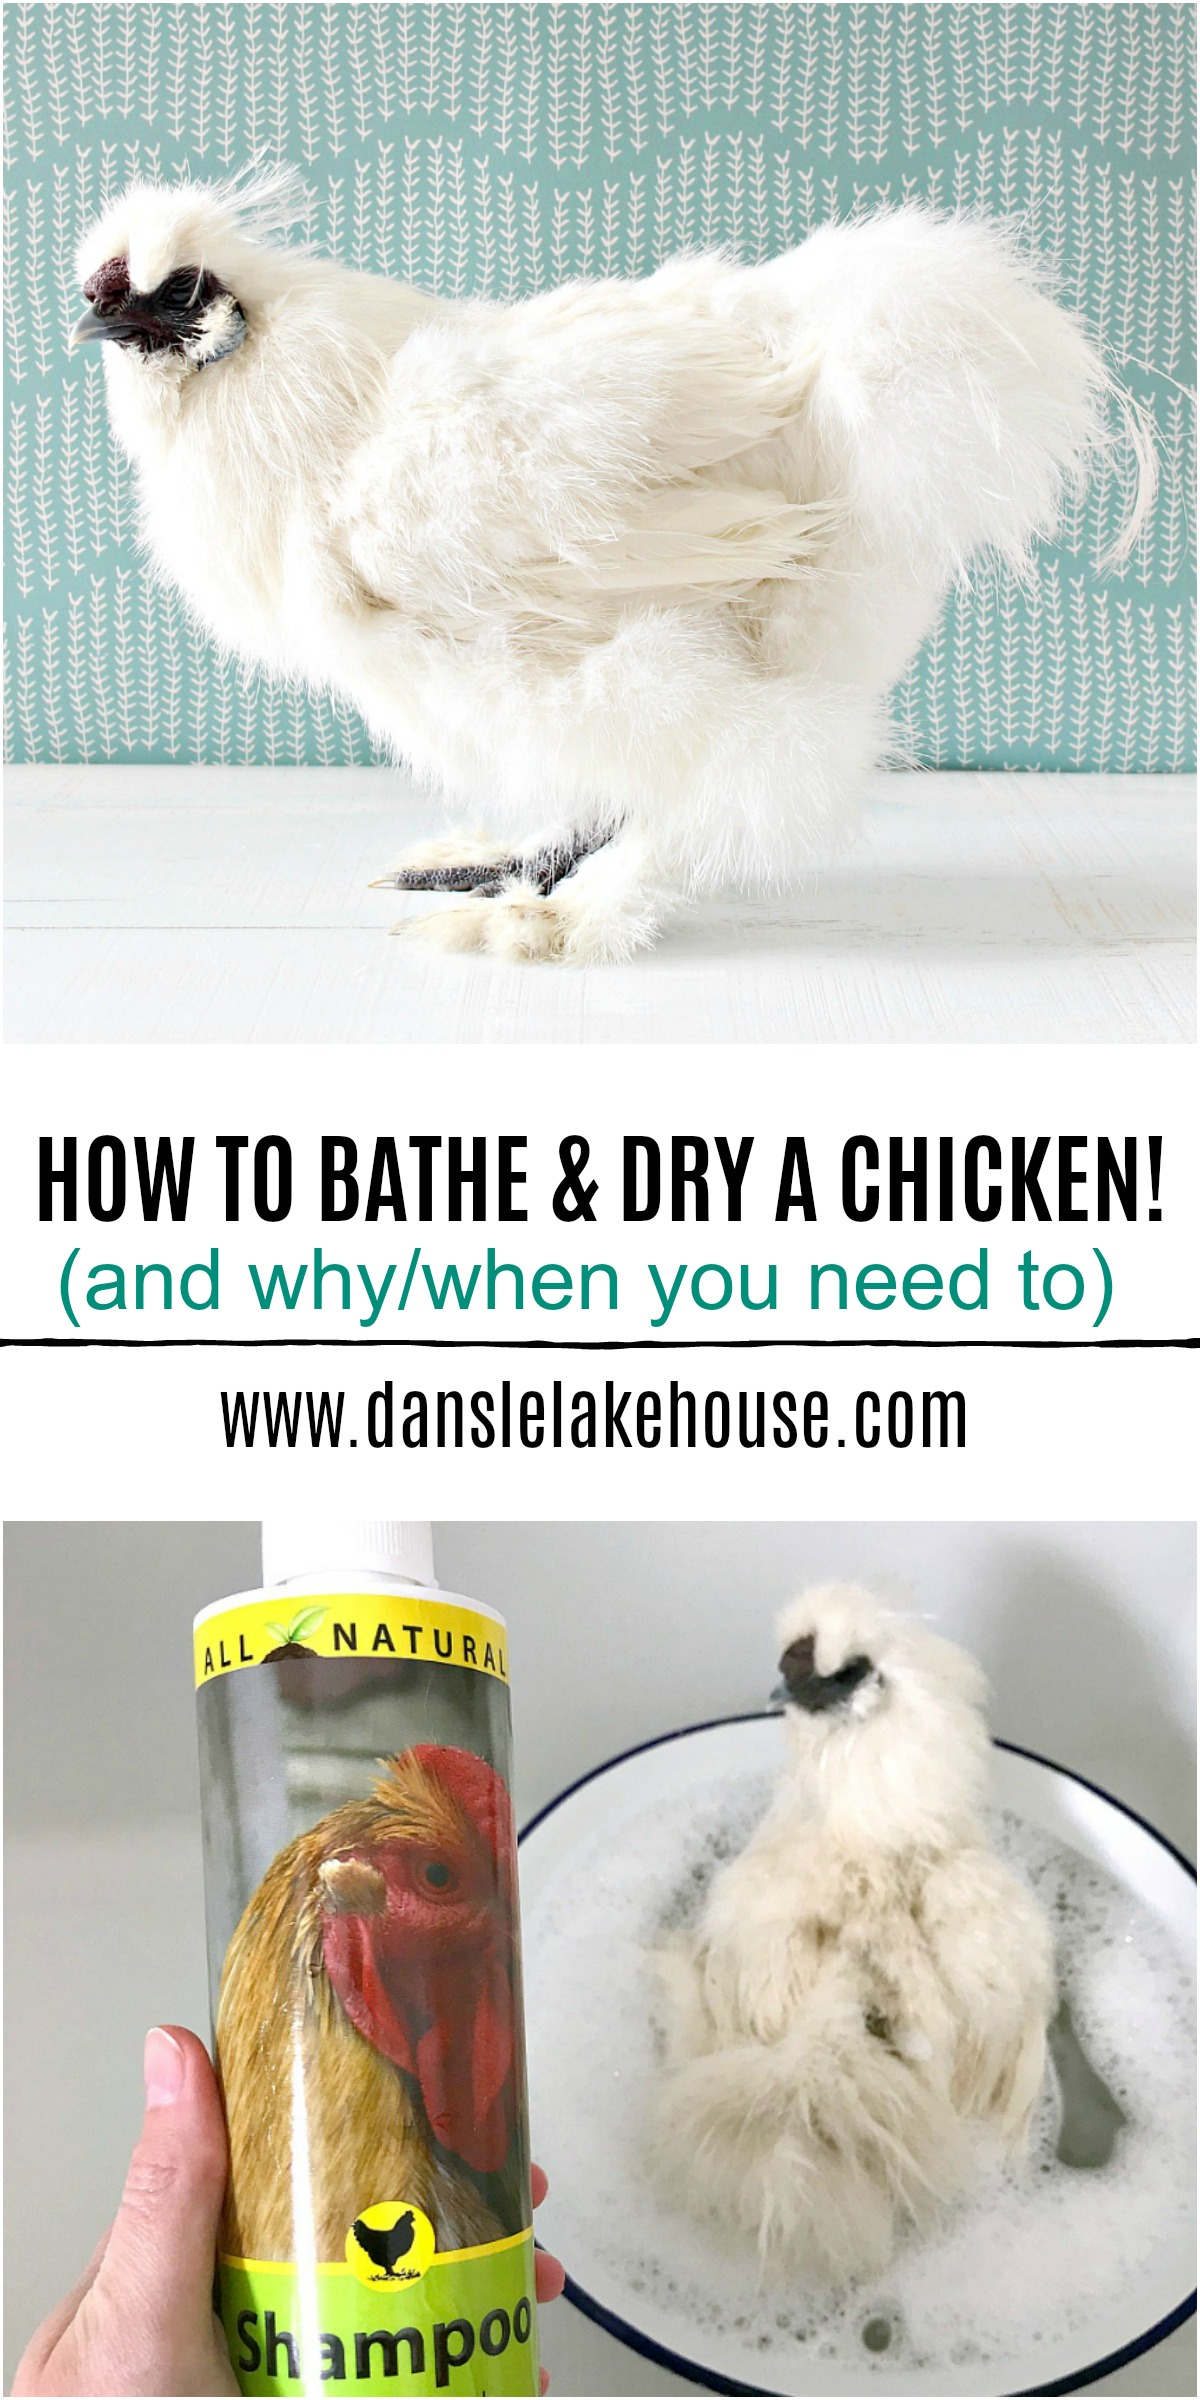 How to Bathe and Dry a Chicken and Why/When You Need to Wash a Chicken